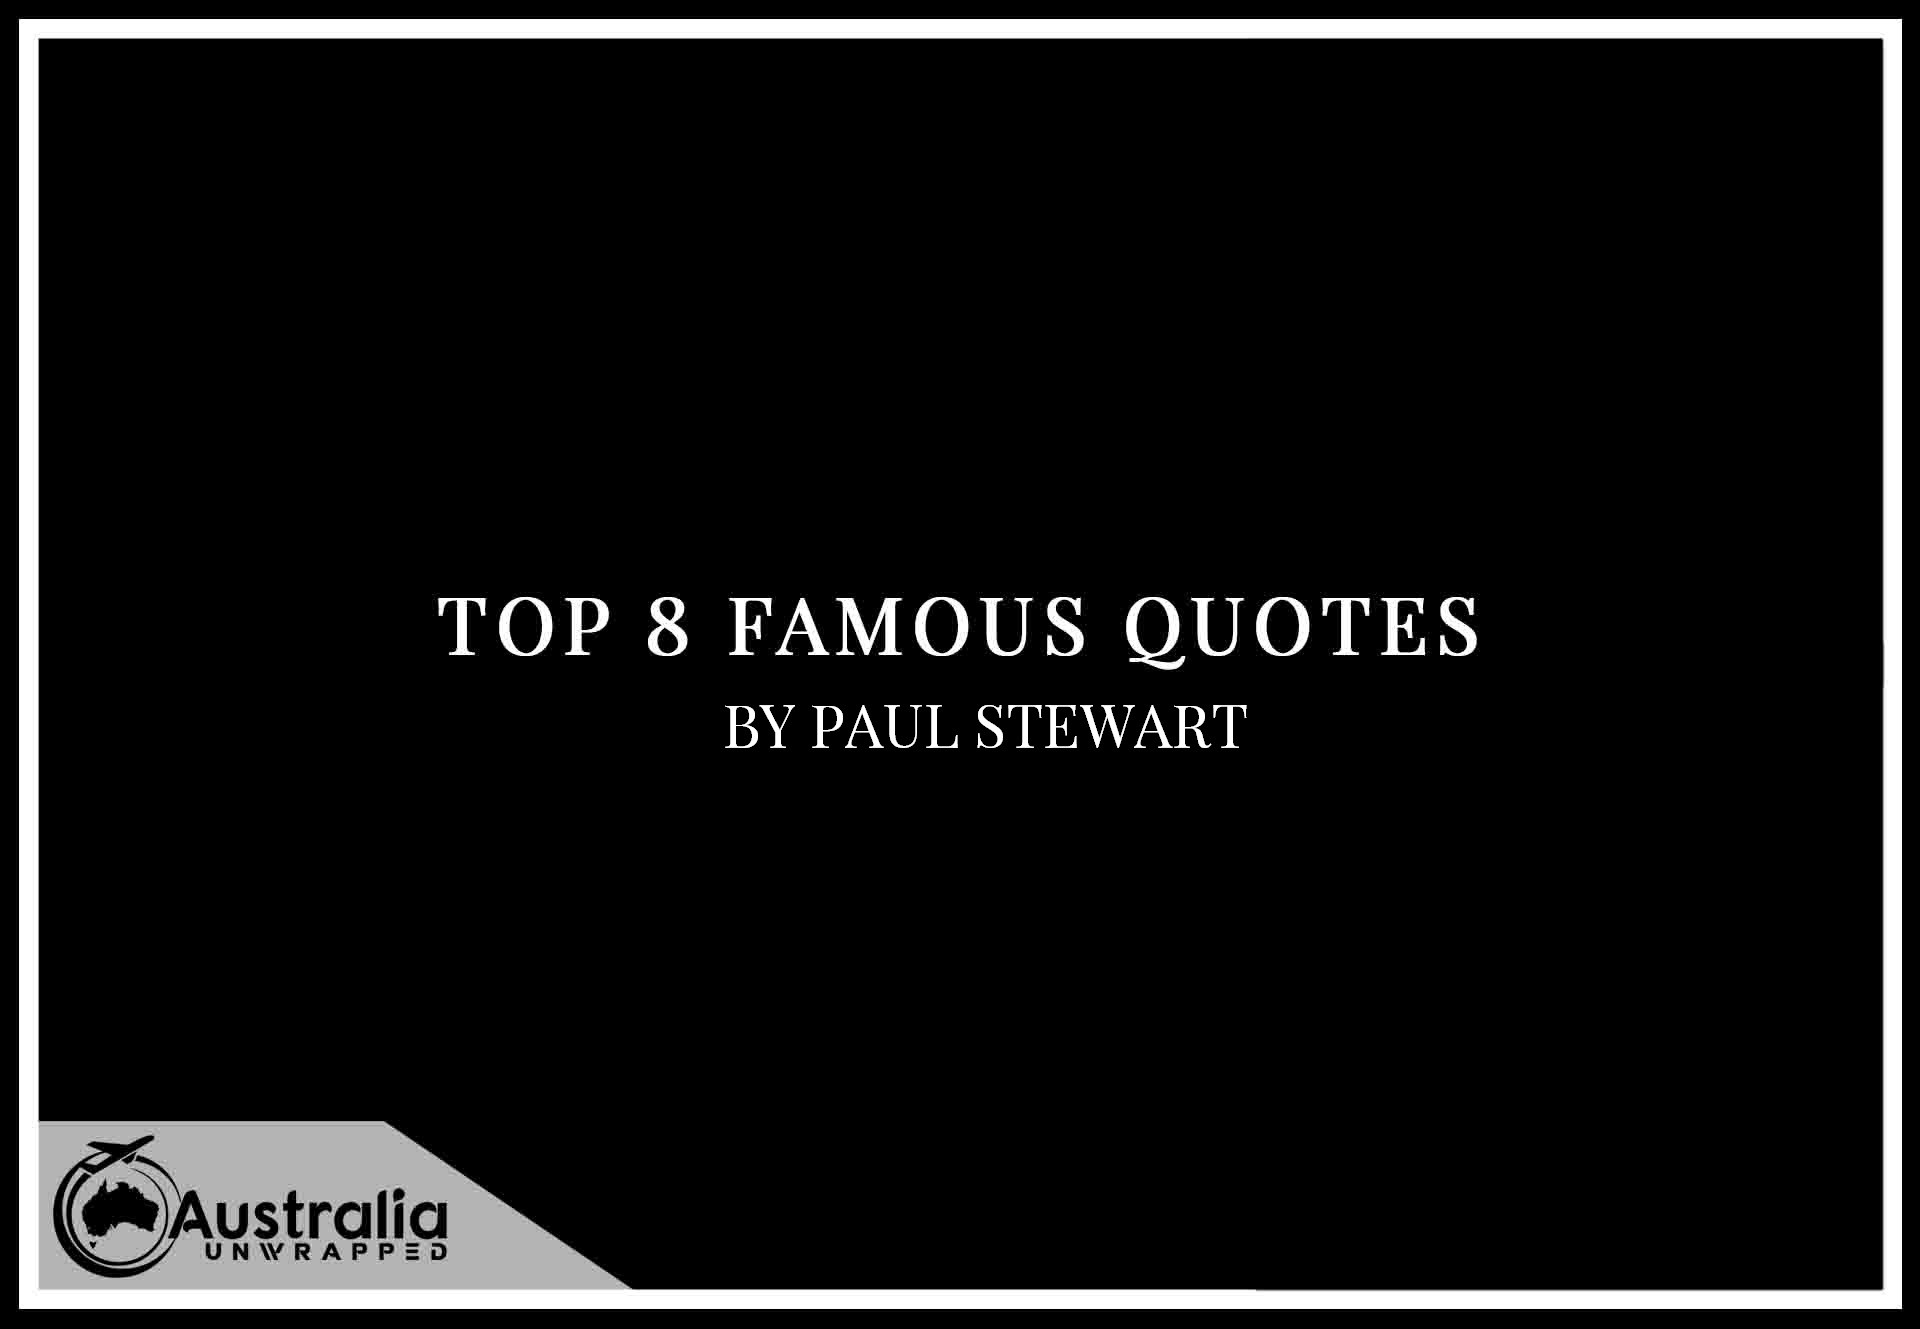 Top 8 Famous Quotes by Author Paul Stewart